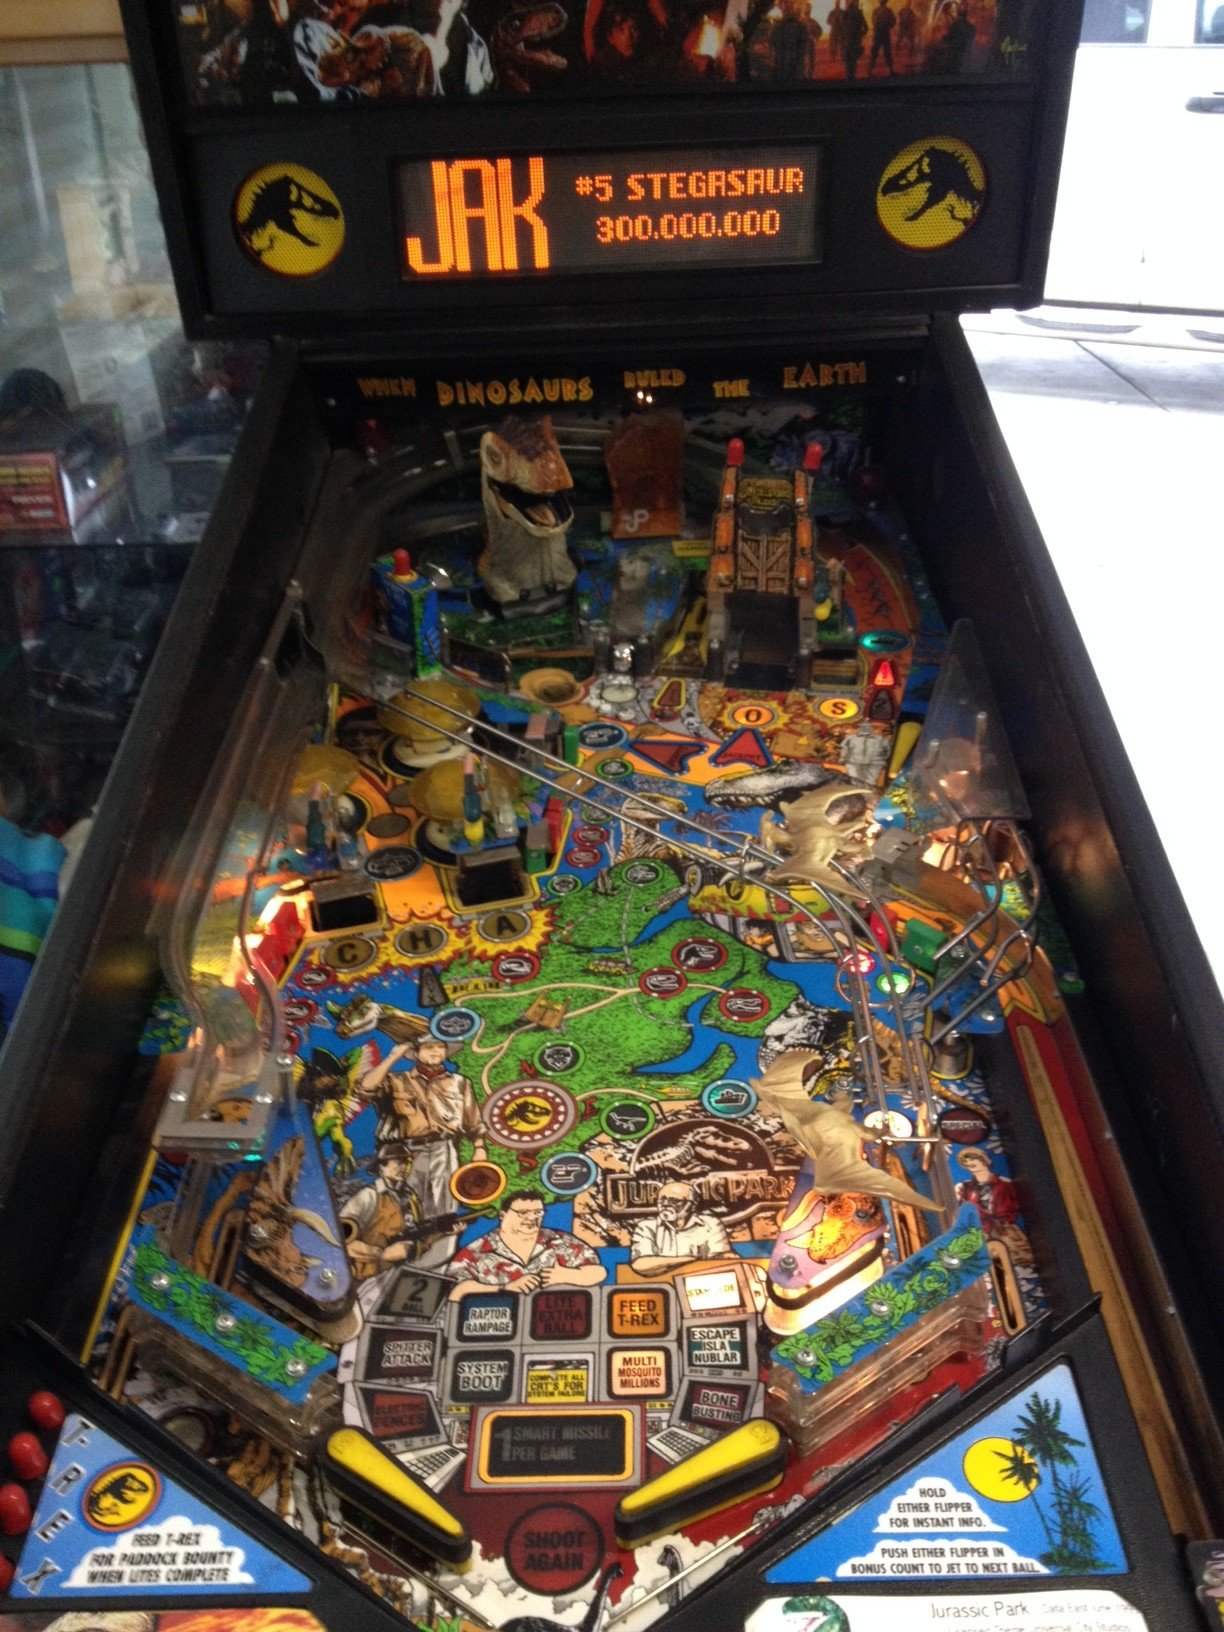 1993 Jurassic Park pinball machine for sale in Madera, CA